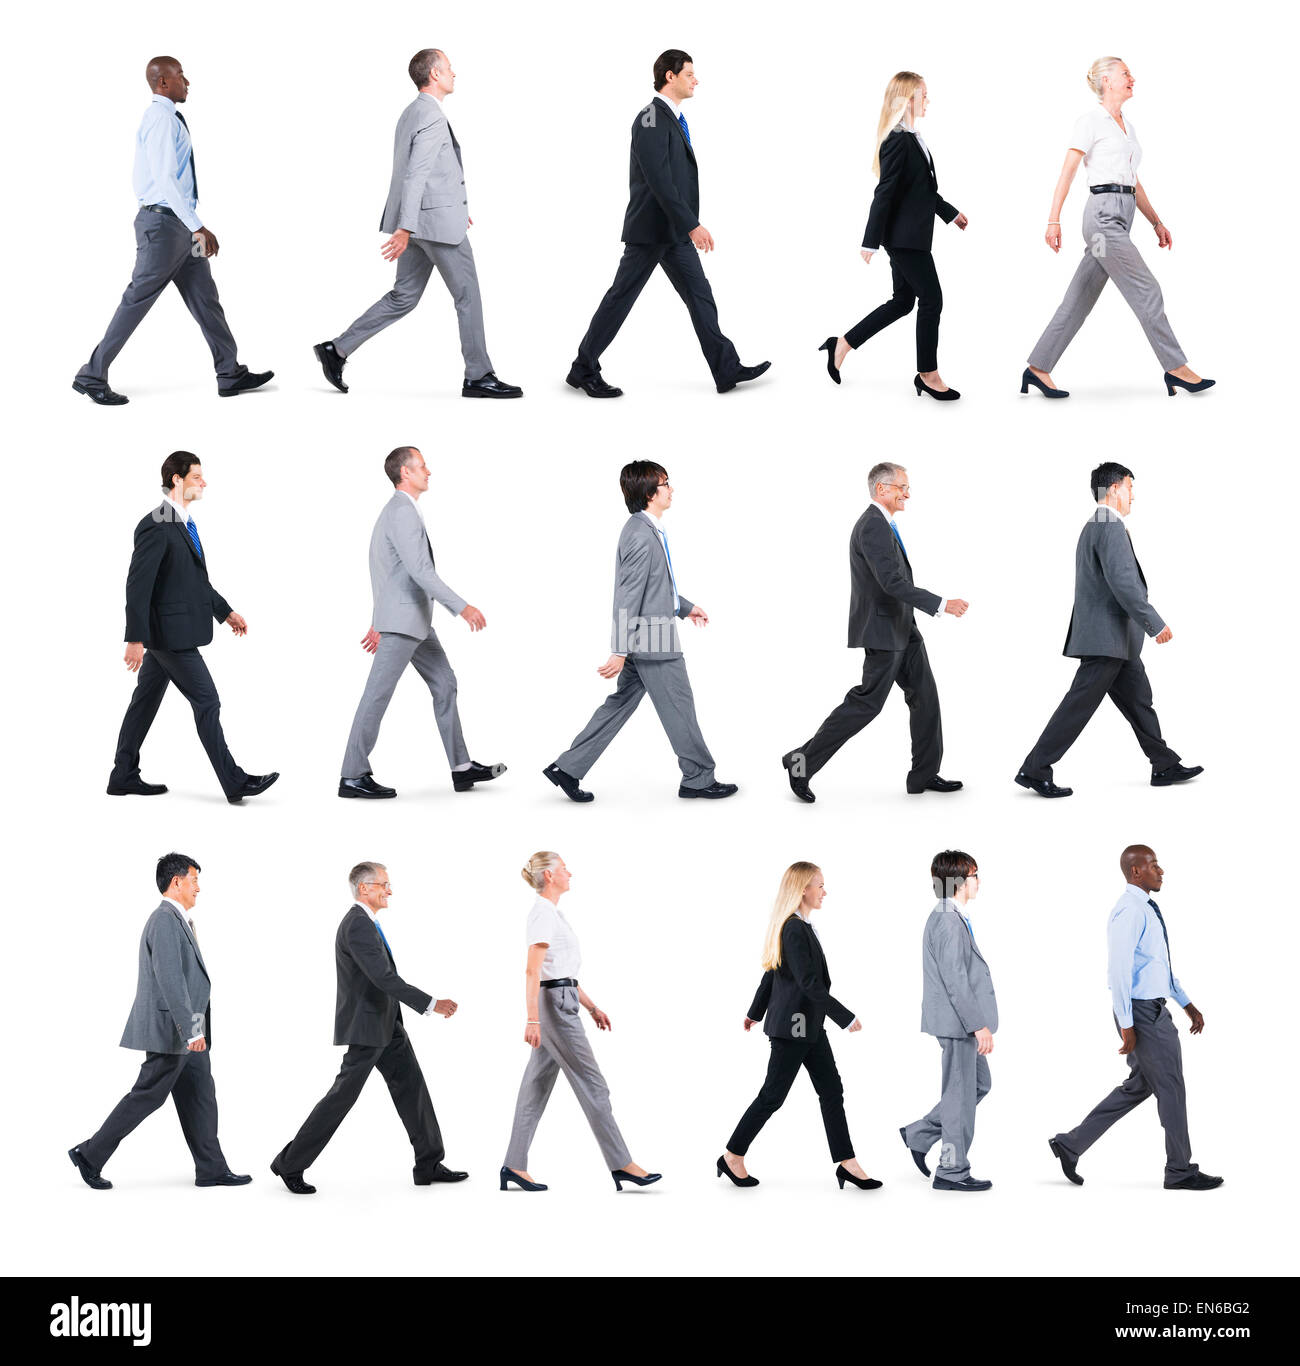 Group of Business People Walking in One Direction - Stock Image